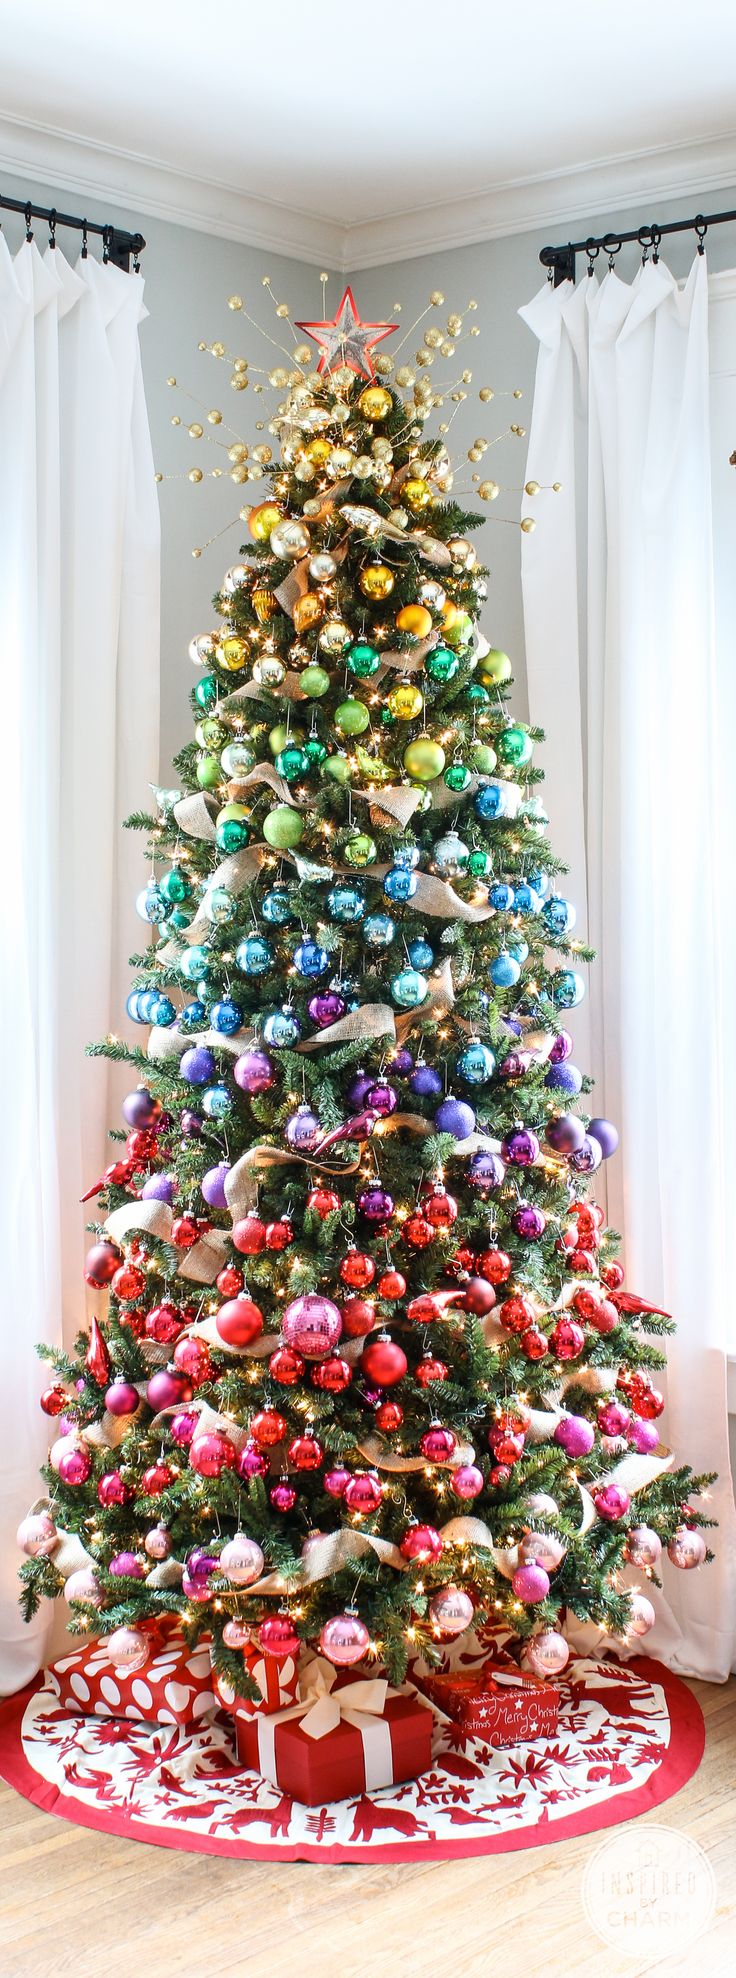 Describing beautiful christmas decorations - Gradient Rainbow Christmas Tree